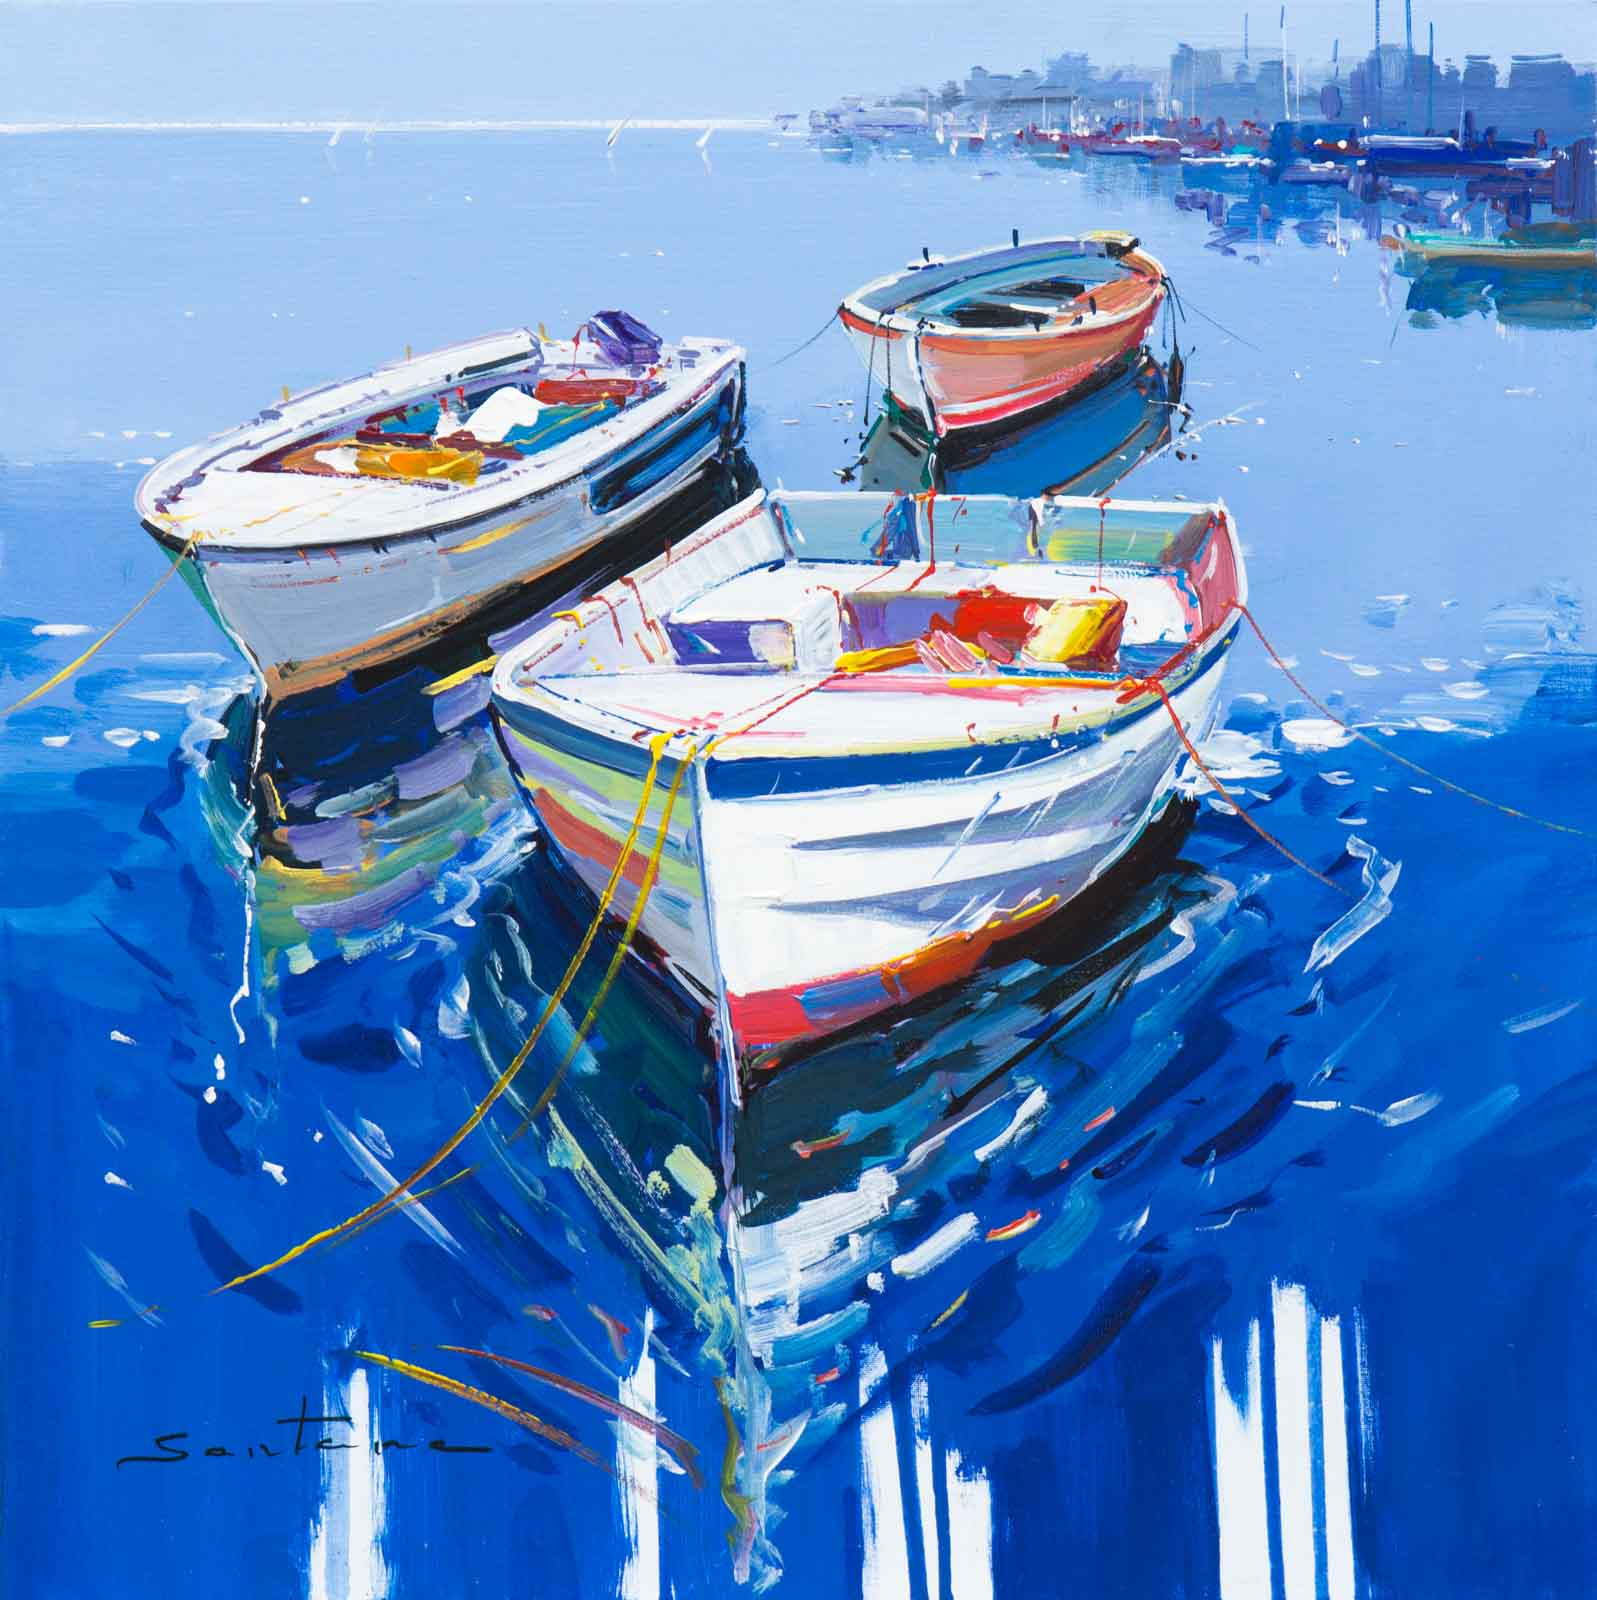 The Marina, Francisco Santana